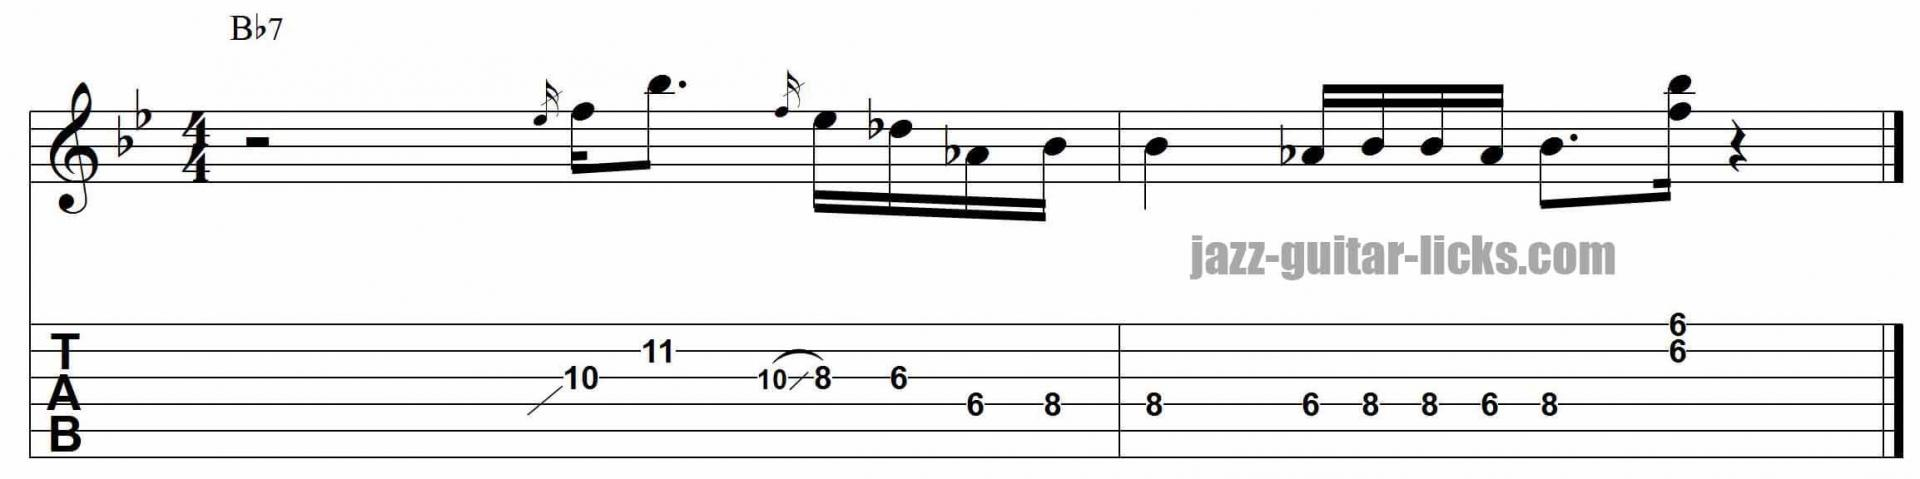 Soul jazz minor pentatonic guitar lick